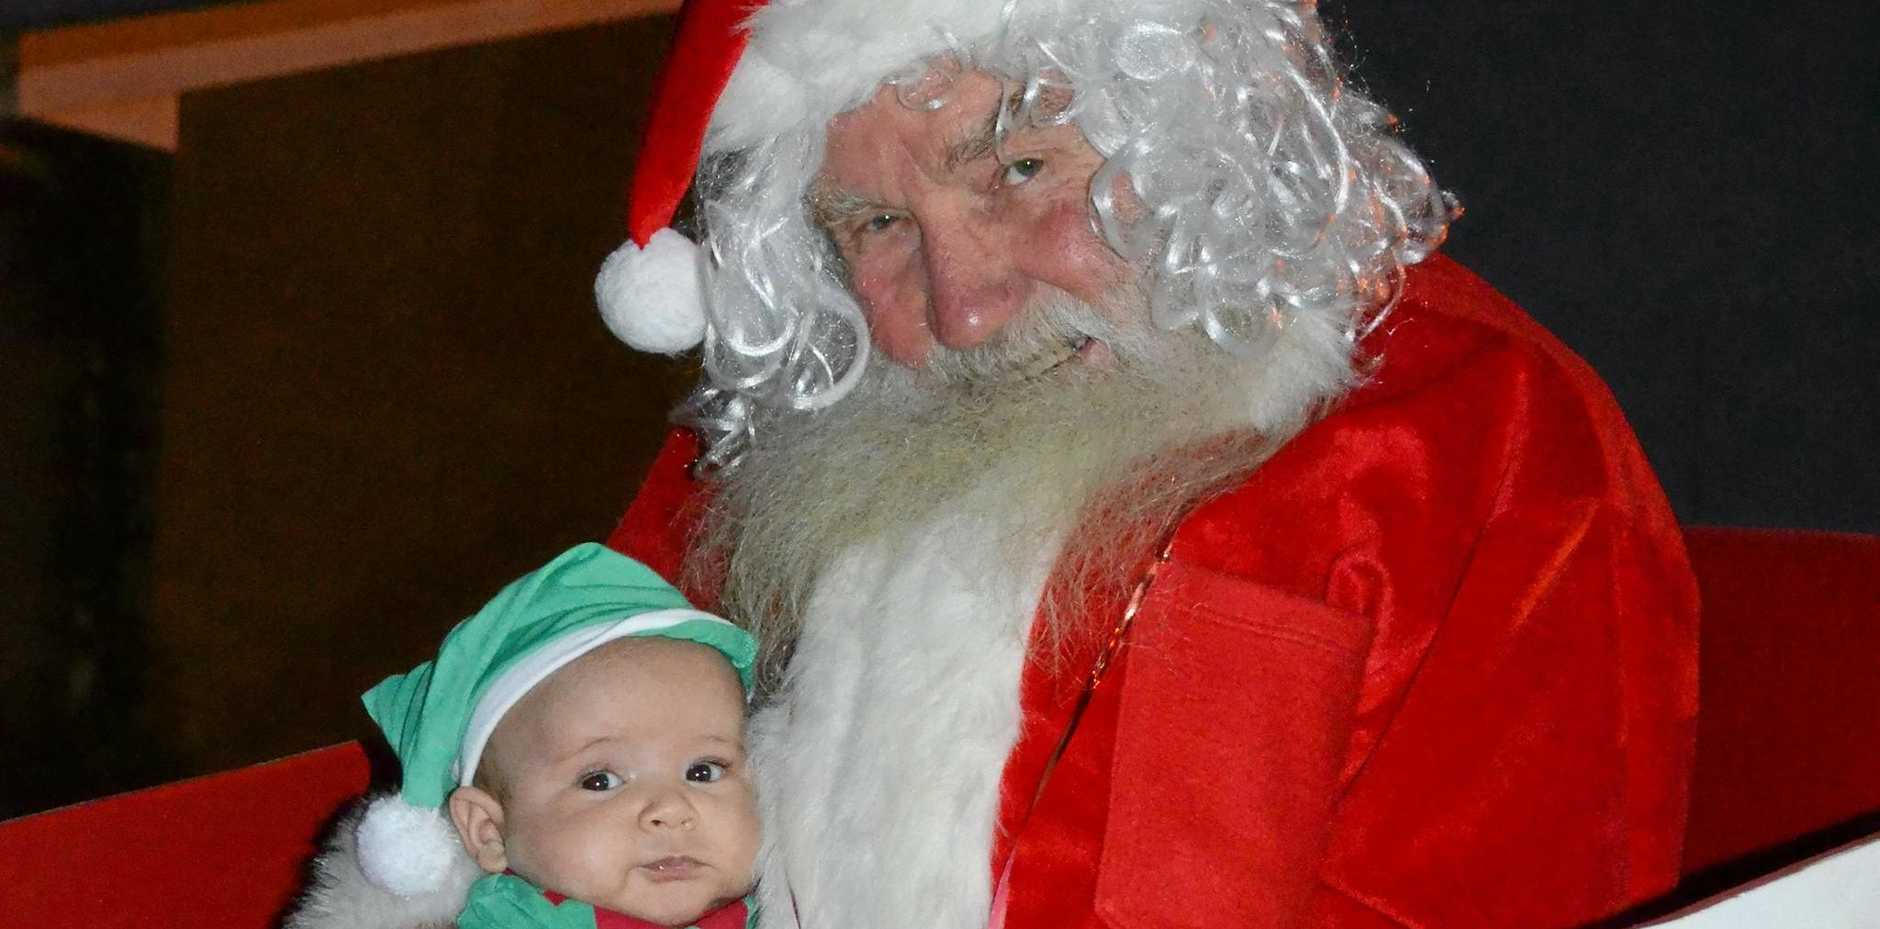 FUN FOR ALL AGES: Christmas elf Clancy Willett visited Santa Claus (Bill Humble) before Santa arrived at the Carols by Candlelight.